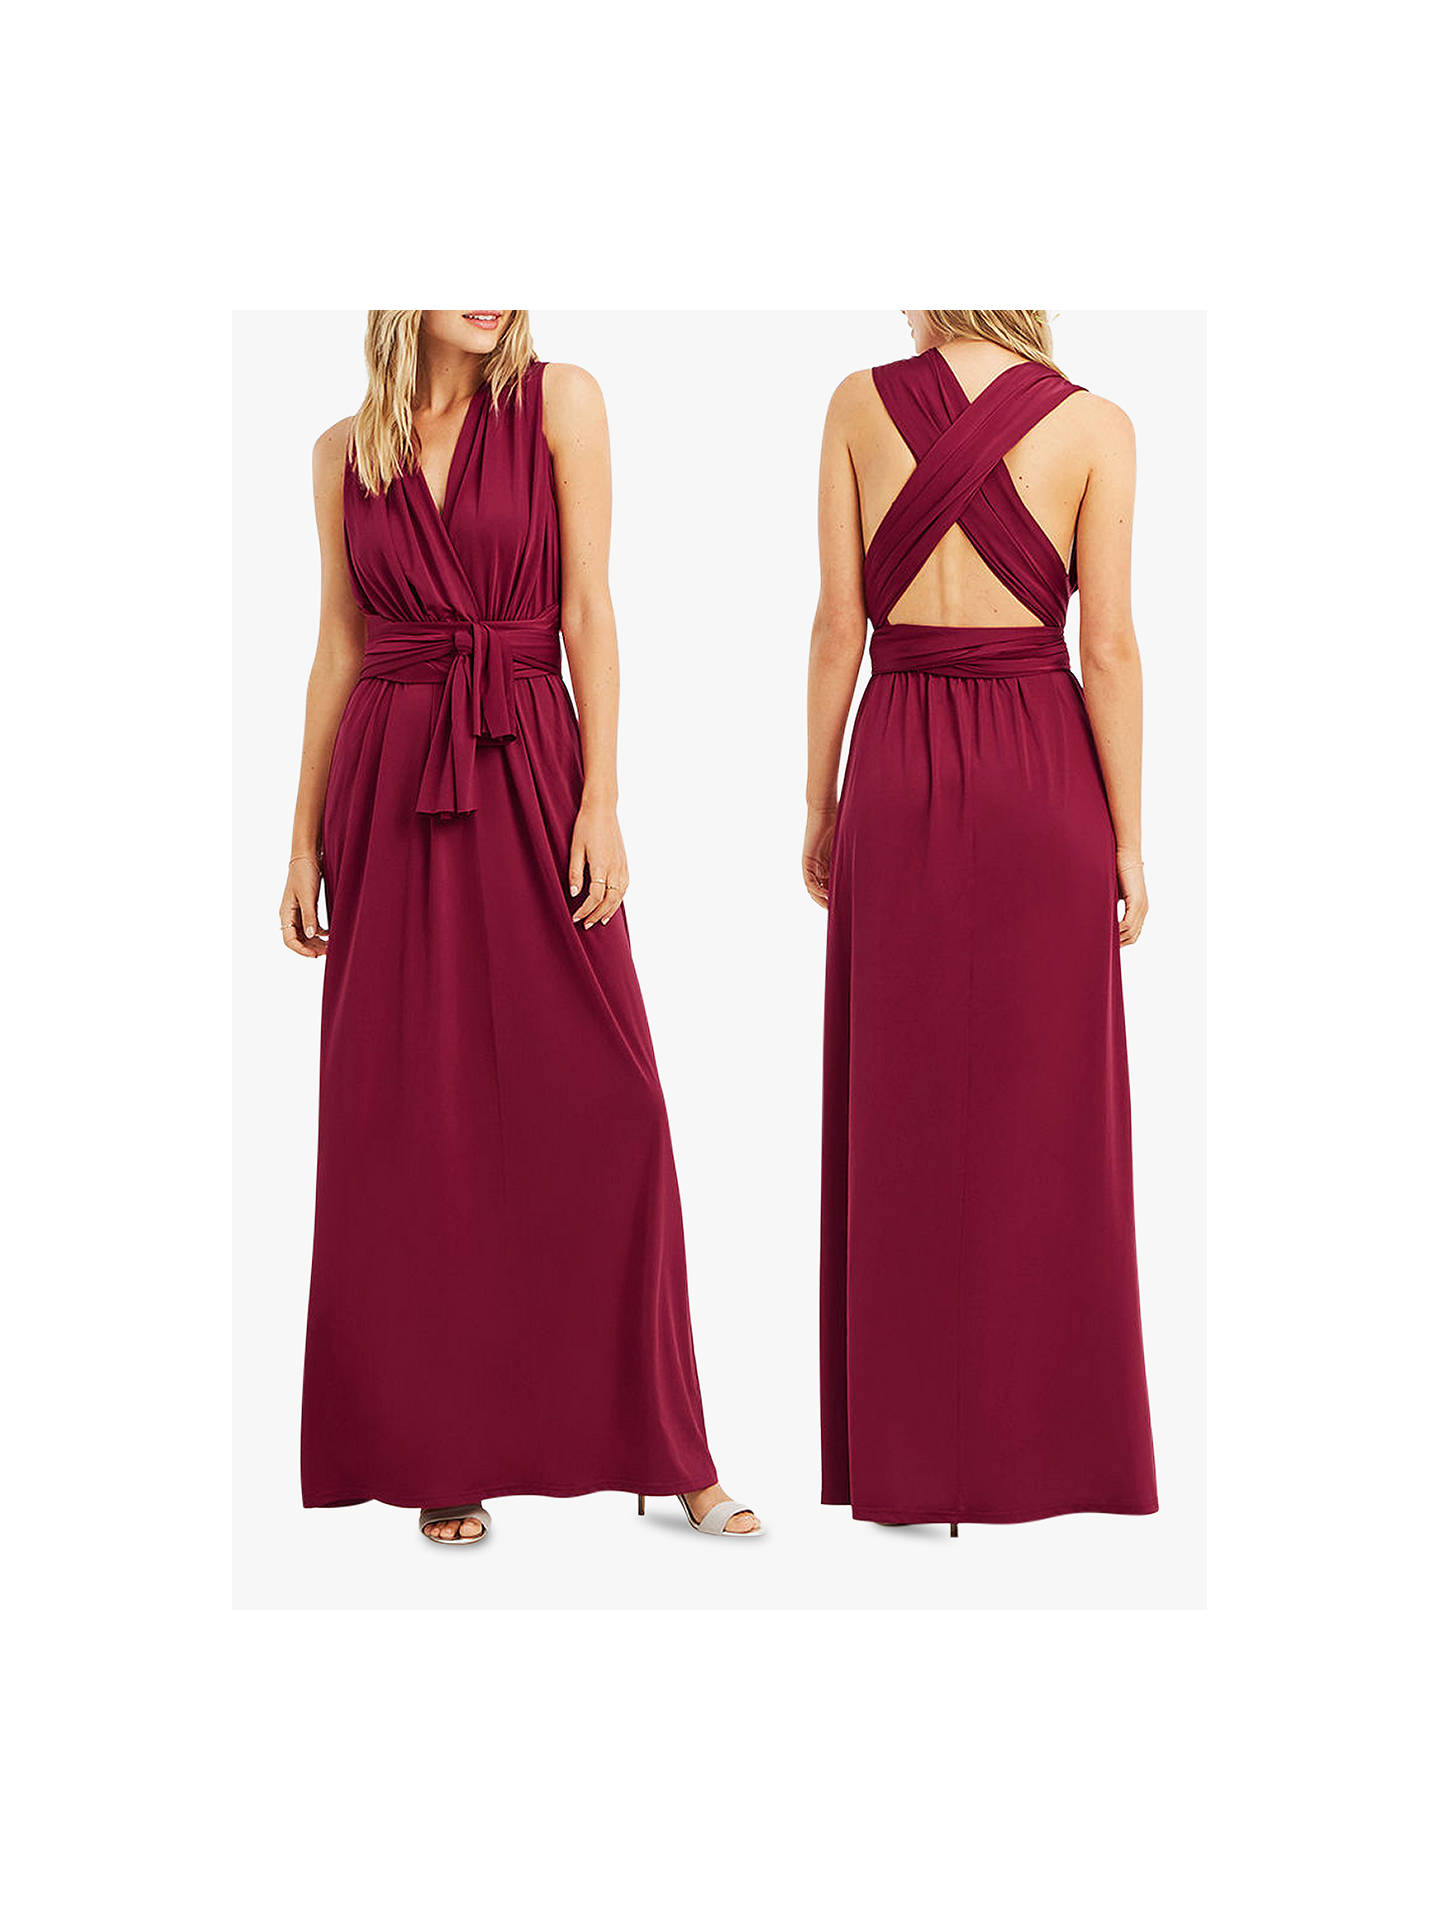 01cdc3854ce5 ... Buy Oasis Annie Multiway Maxi Dress, Burgundy, XS Online at  johnlewis.com